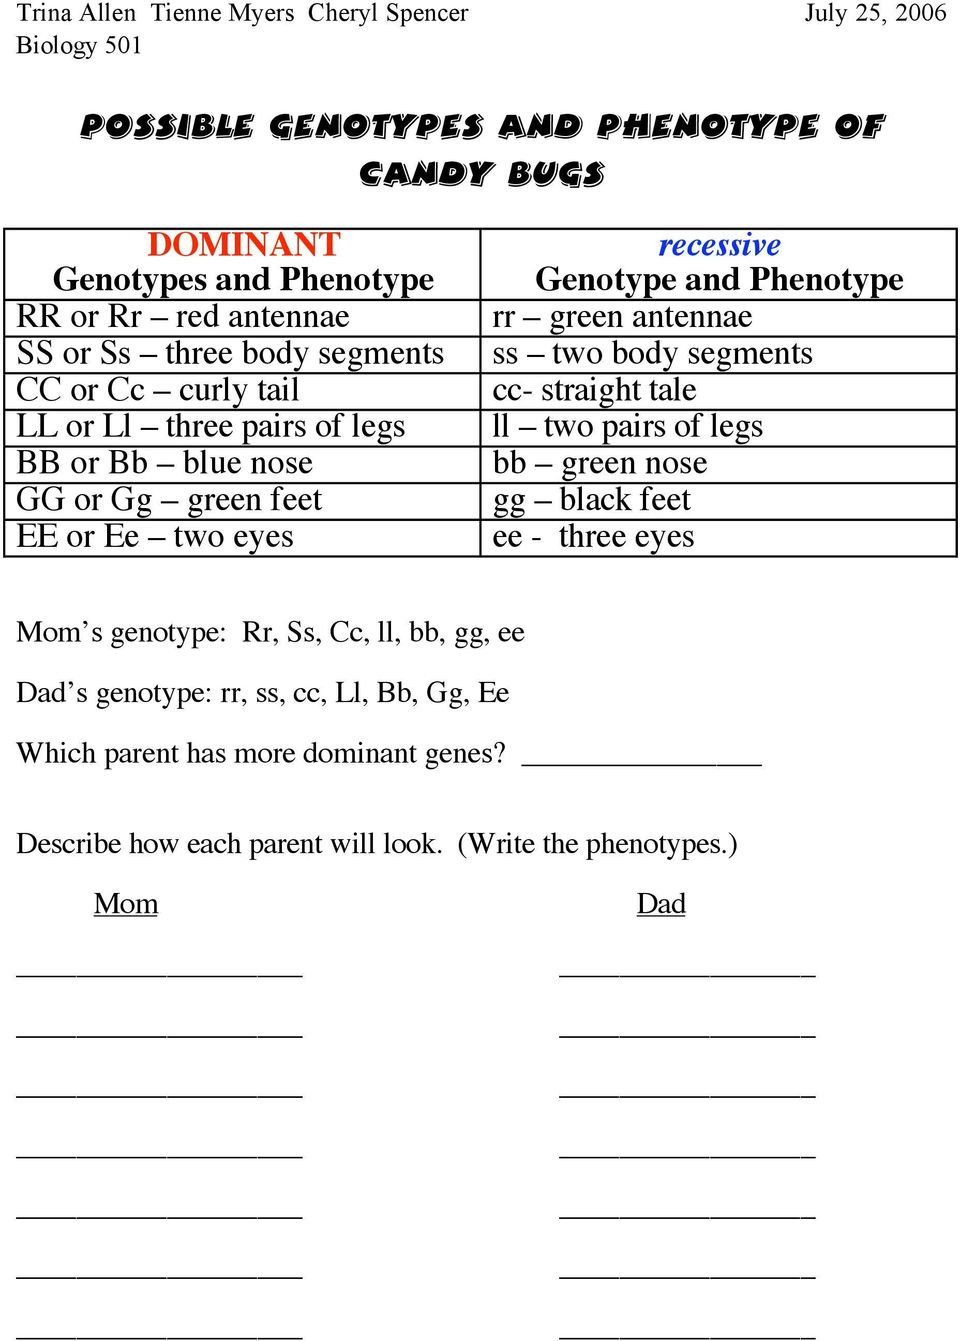 Genotypes and Phenotypes Worksheet Lesson Plan Genotype and Phenotype Pdf Free Download